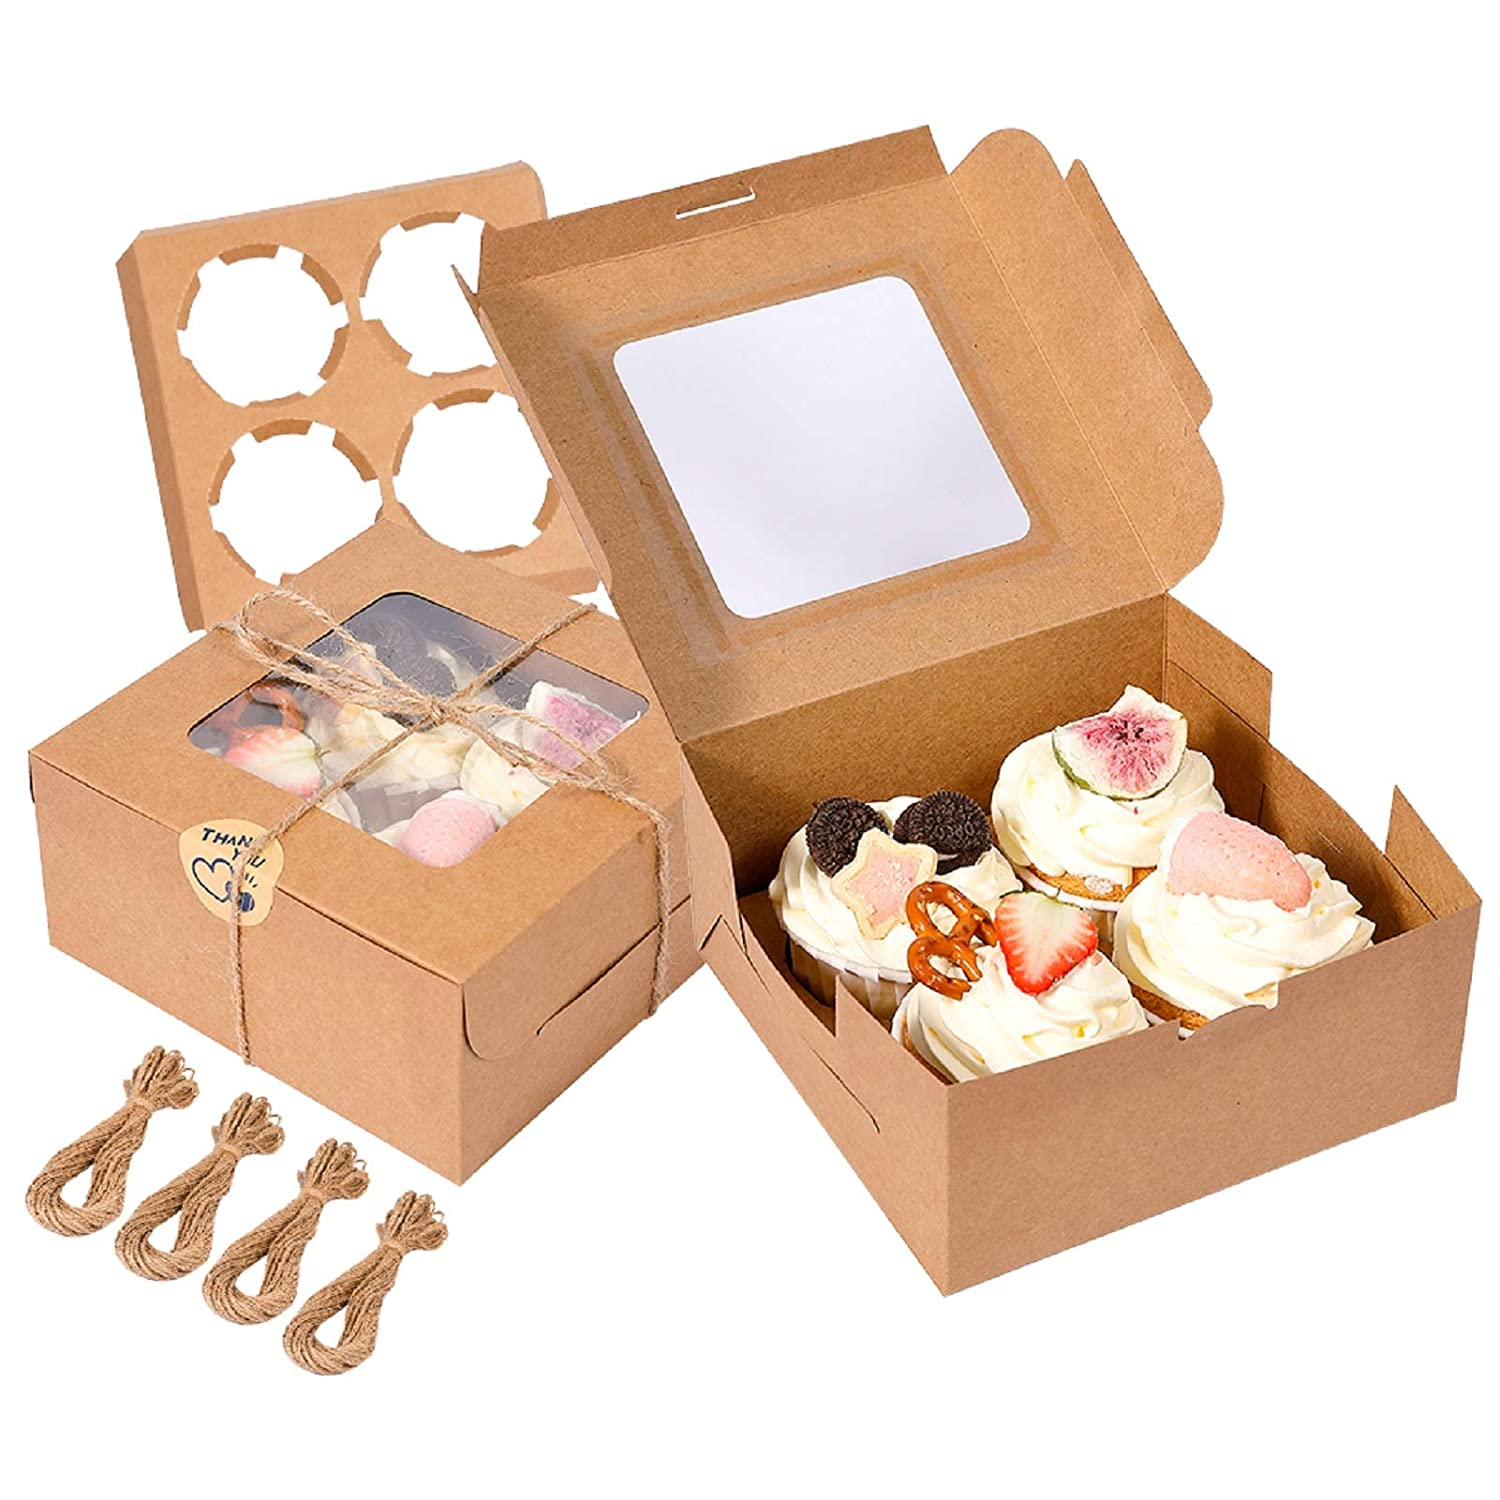 50 Pack Brown Bakery Cake Boxes with Display Window, 6x6x3 Inches Pastry Boxes with Removable Inserts Blessing Stickers, Mini Cookie Cake Boxes for Cupcake, Cookie, Dessert, Pastry